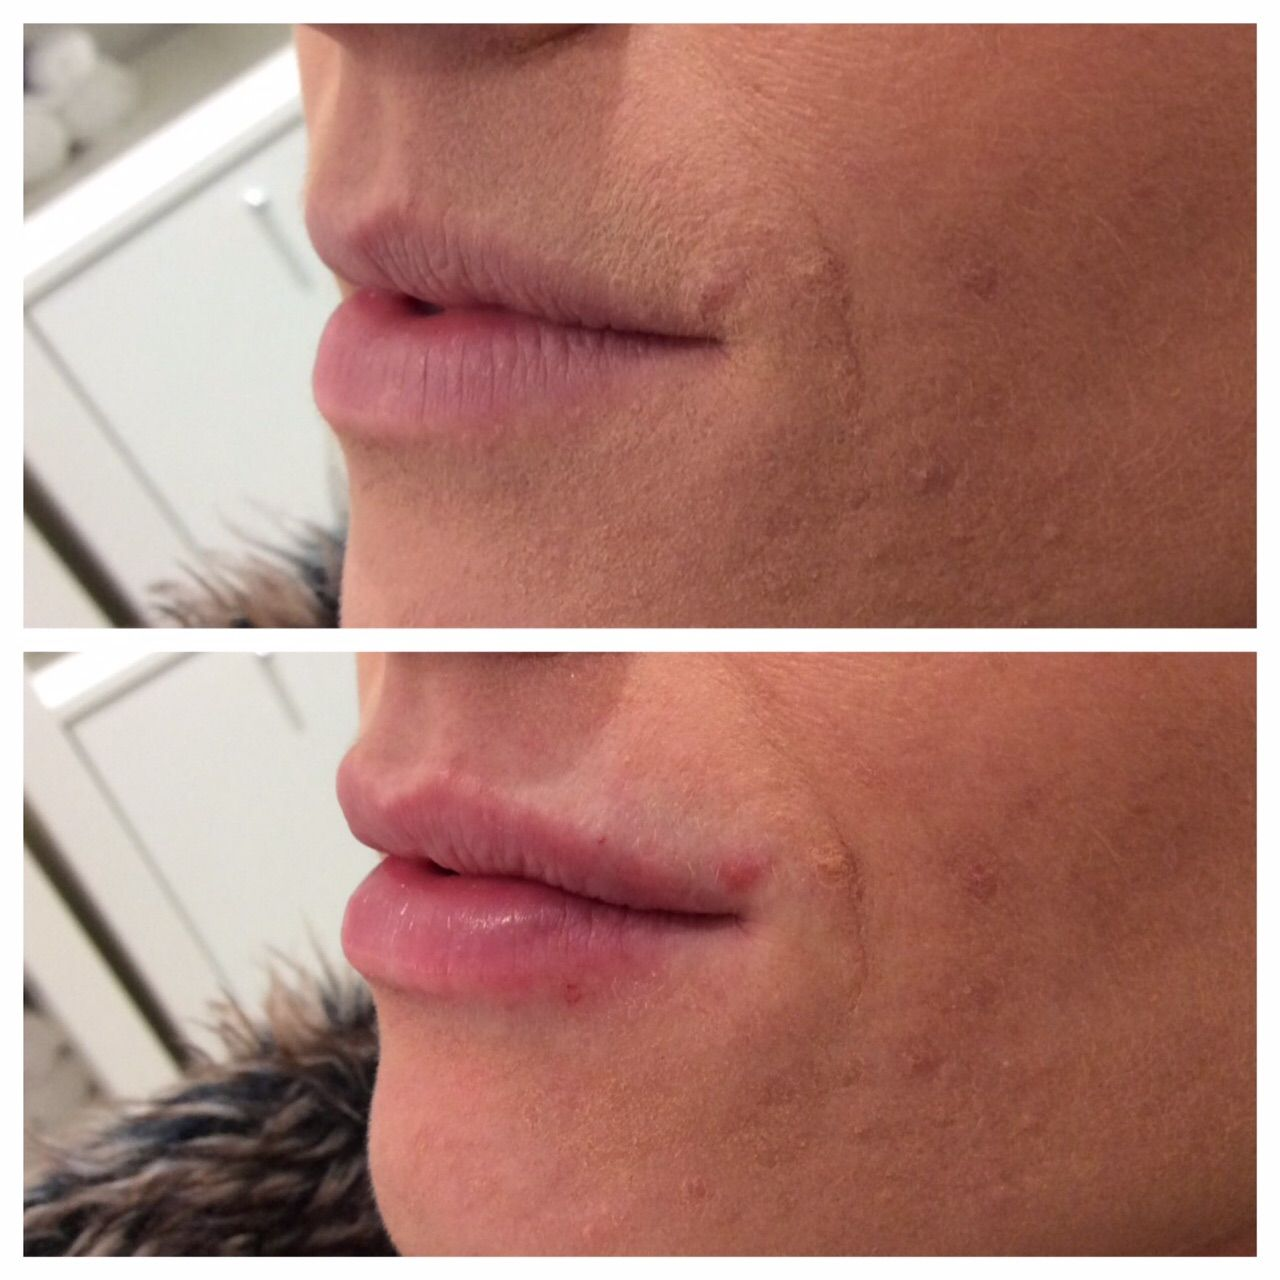 Before & immediately after 0 55ml Juvederm ultra smile to